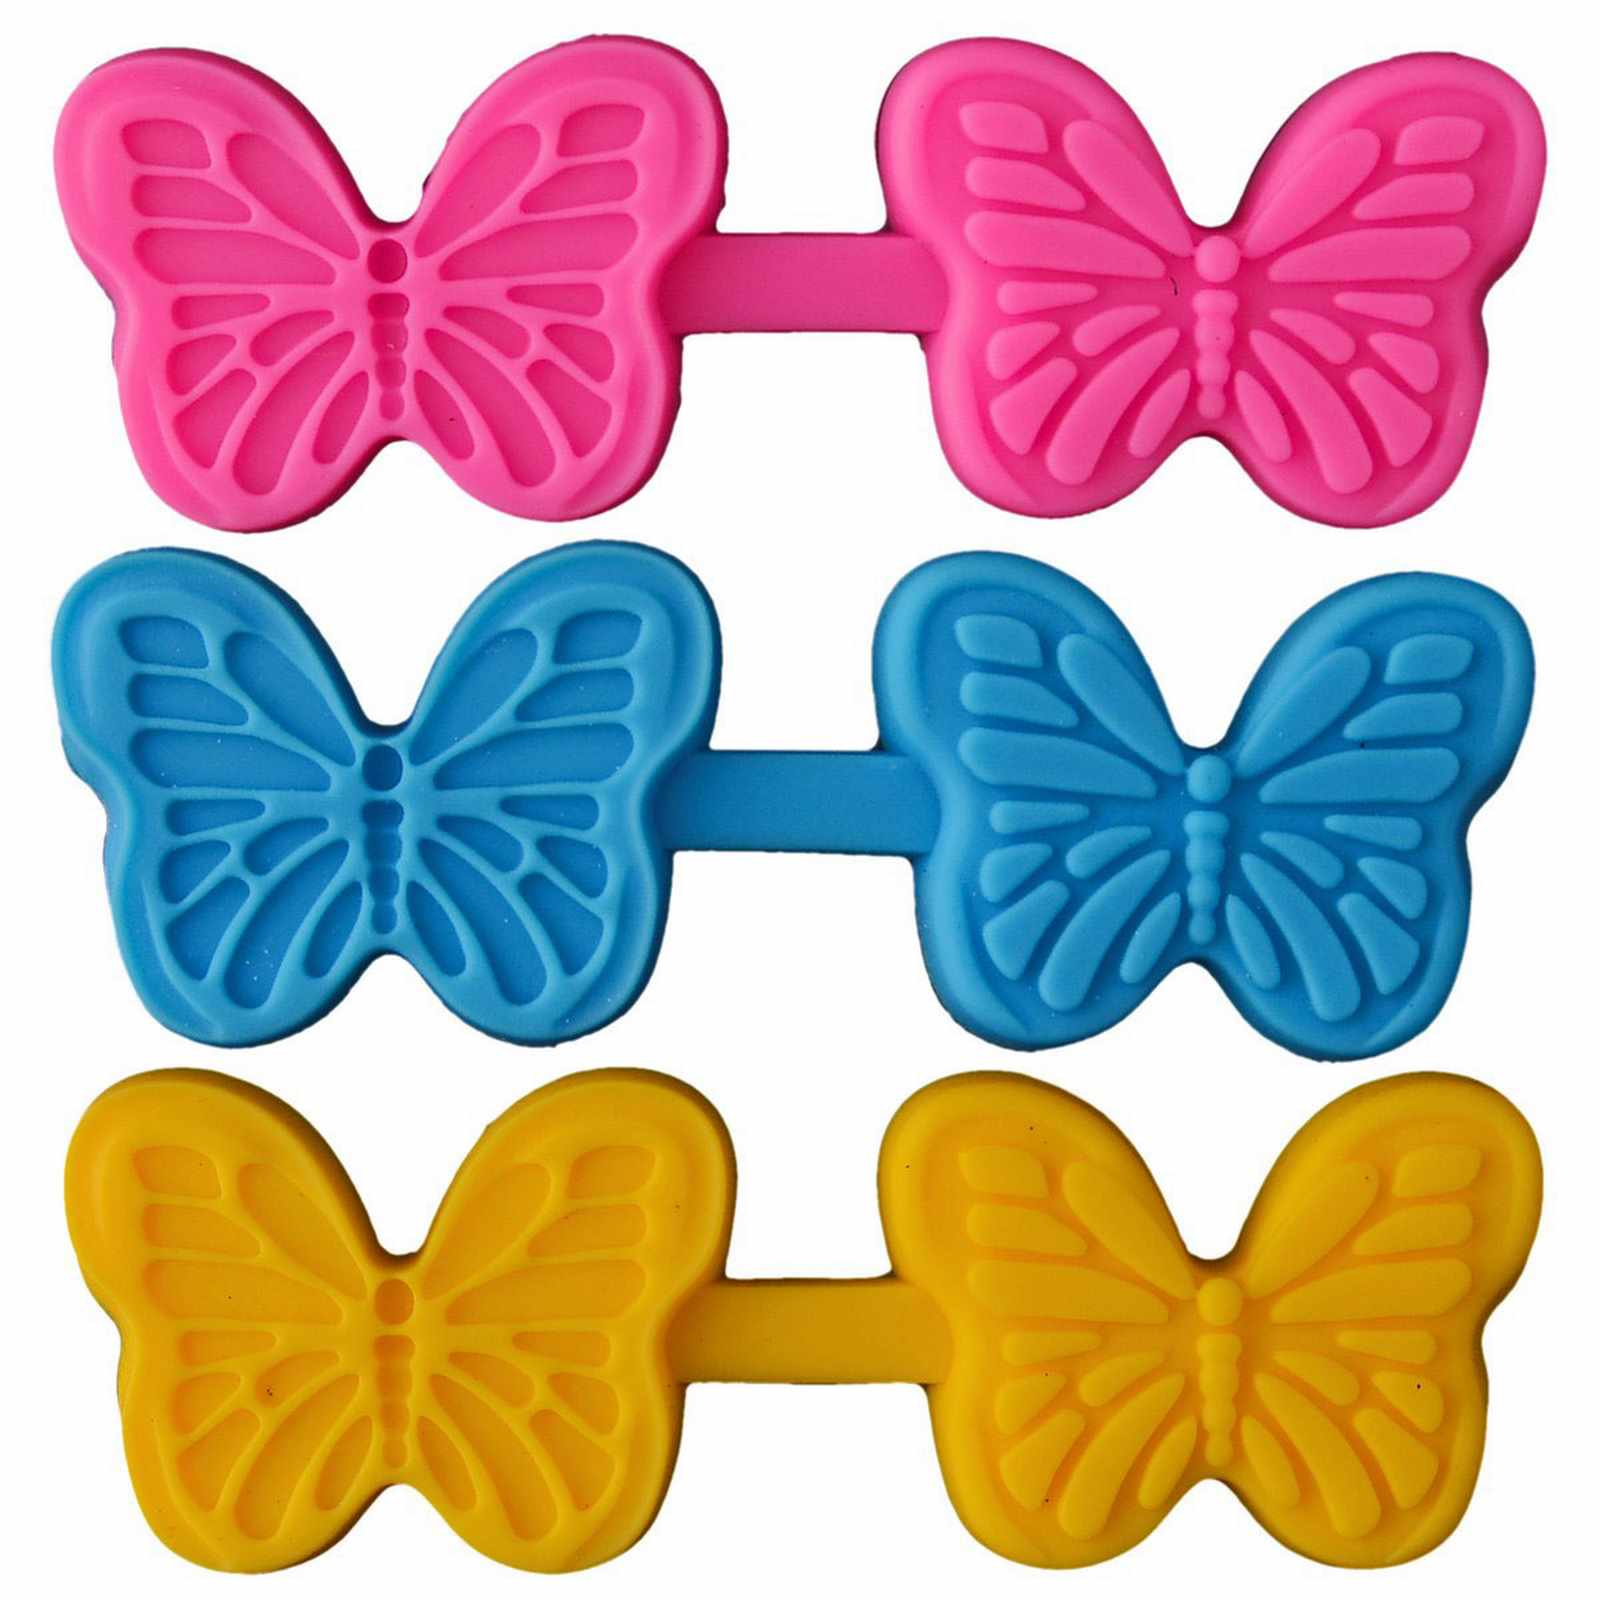 Resin Silicone Mould - Butterfly